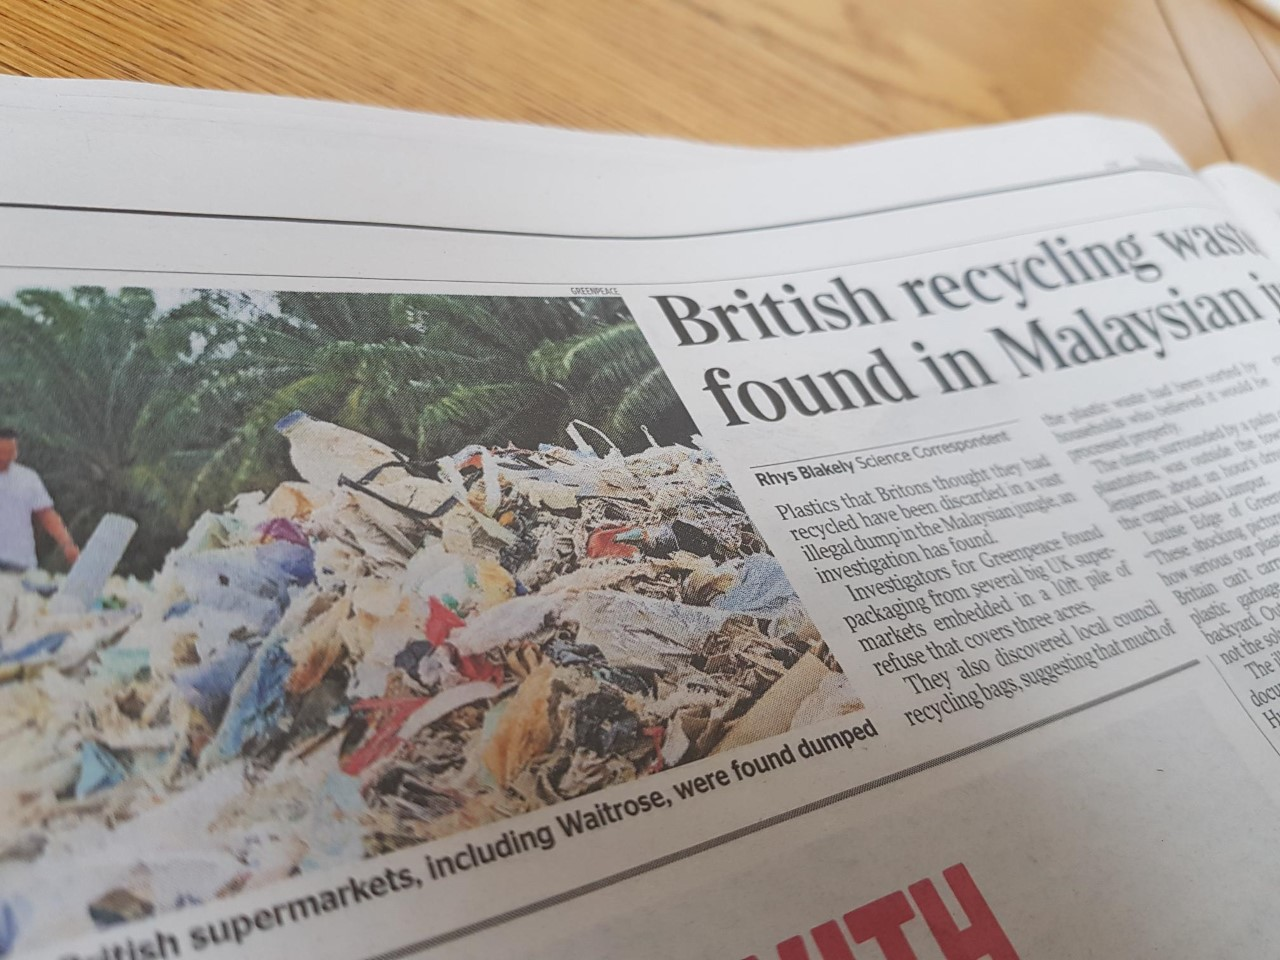 Plastic recycling waste from western countries ending up in landfill in Malaysia